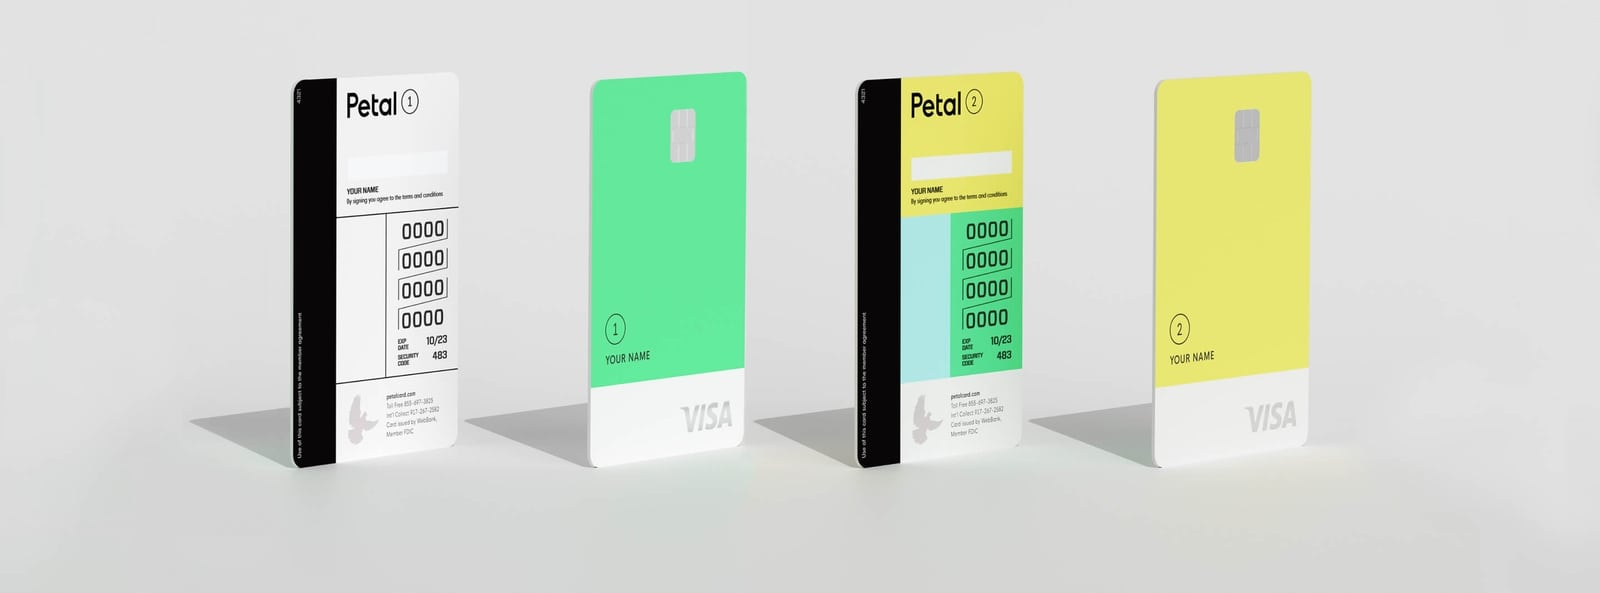 Petal Cards Review, No Credit Required & No Fees